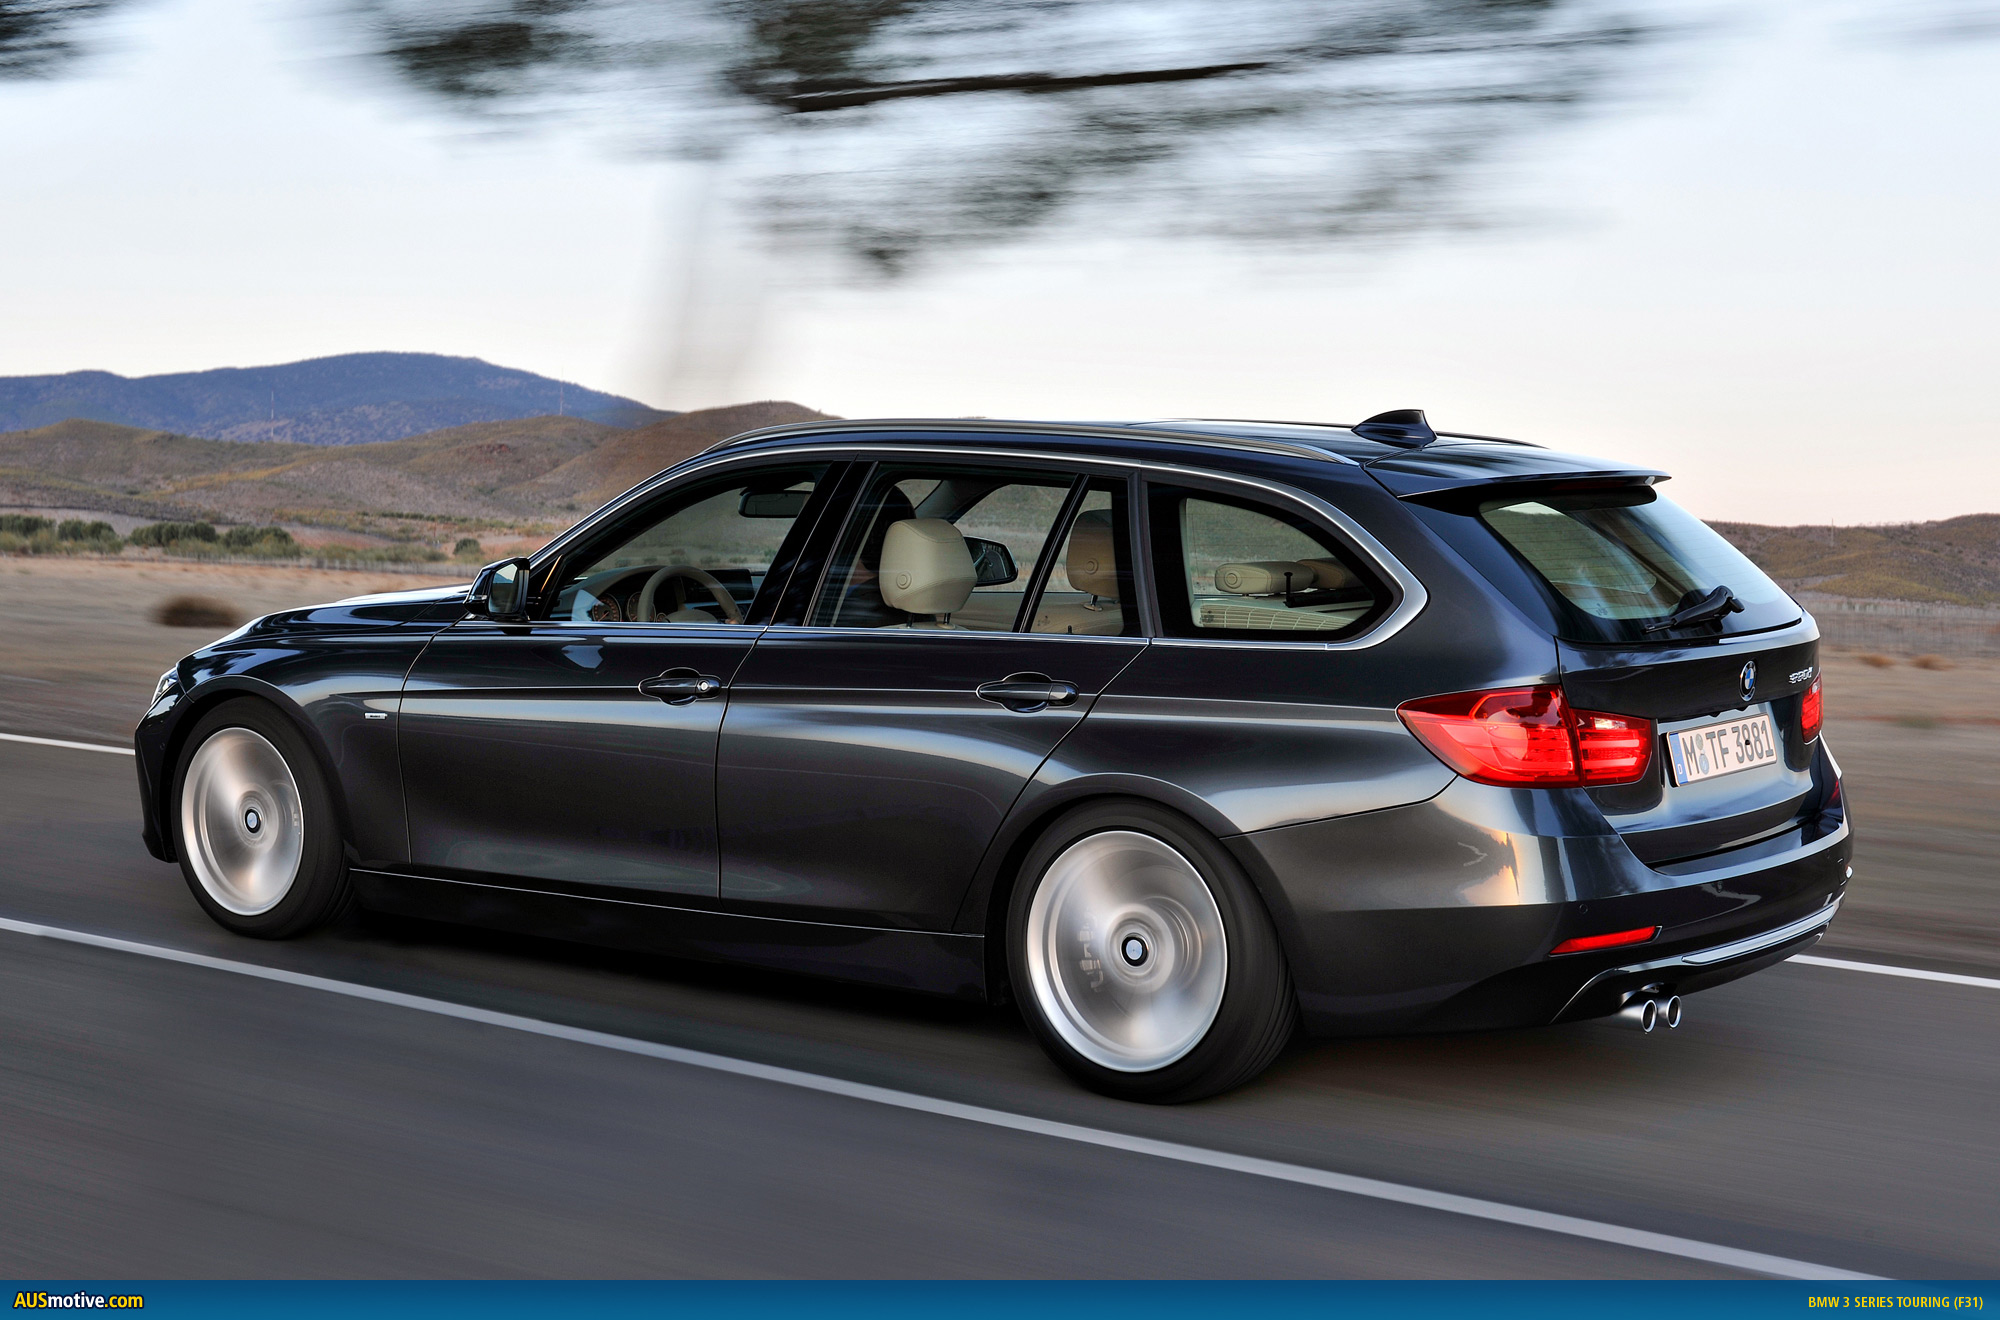 Bmw Serie 3 G20 >> AUSmotive.com » BMW 3 Series Touring revealed